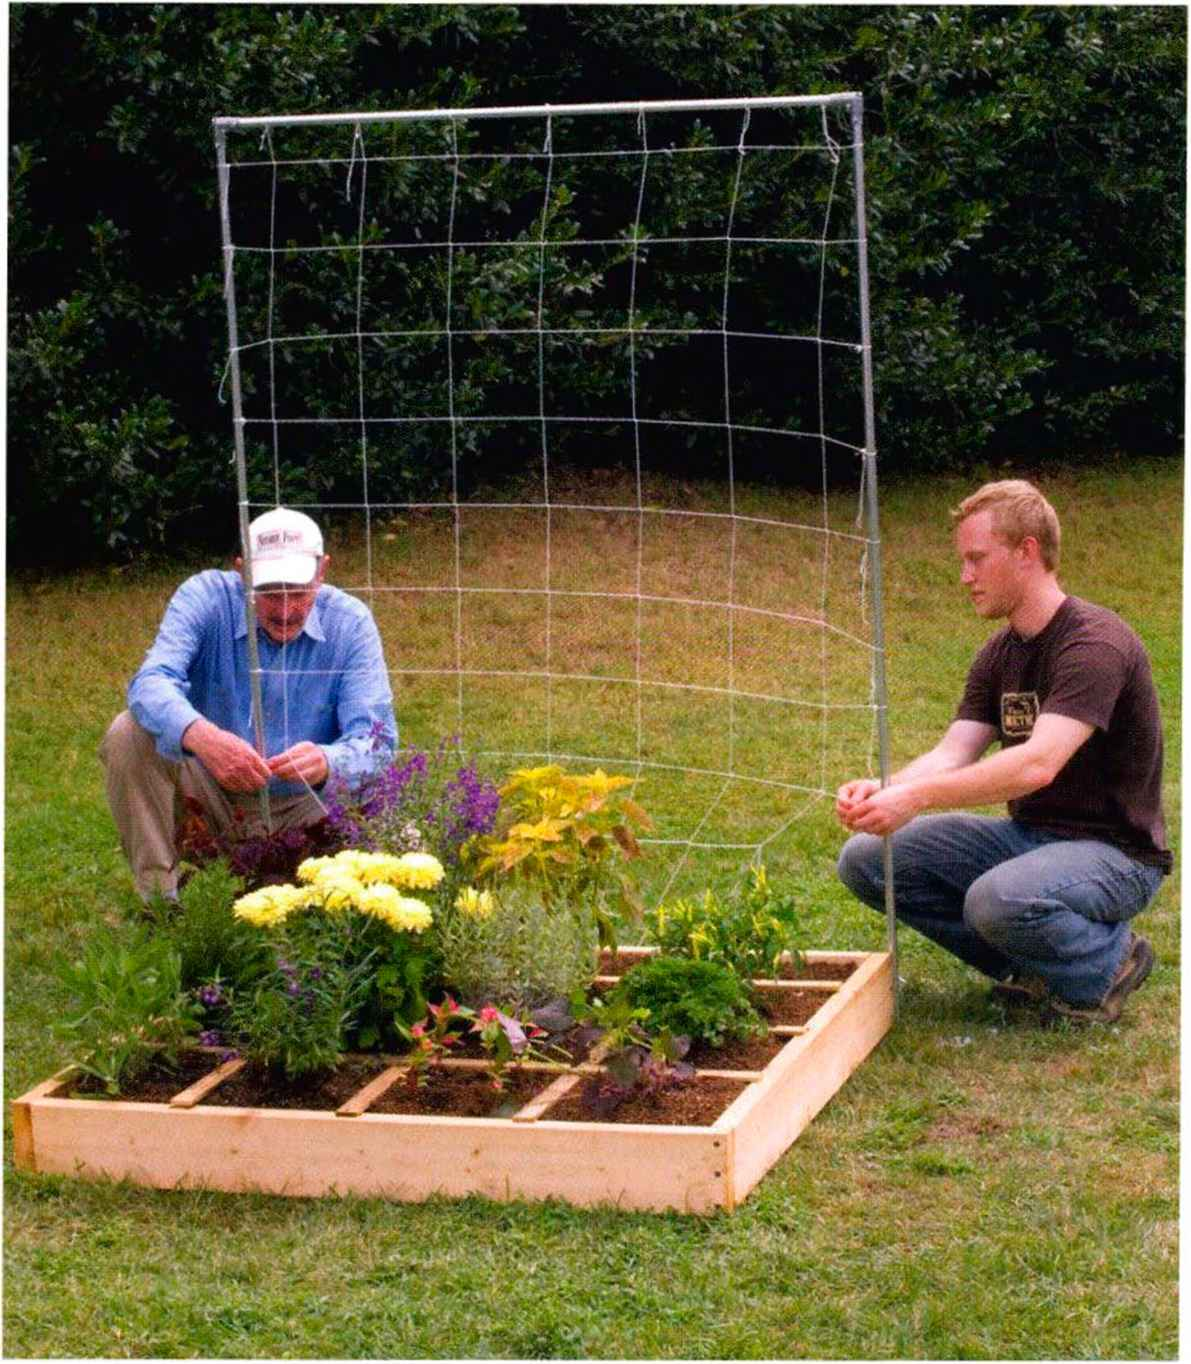 All New Sql Are Foot Gardening Square Foot Gardening